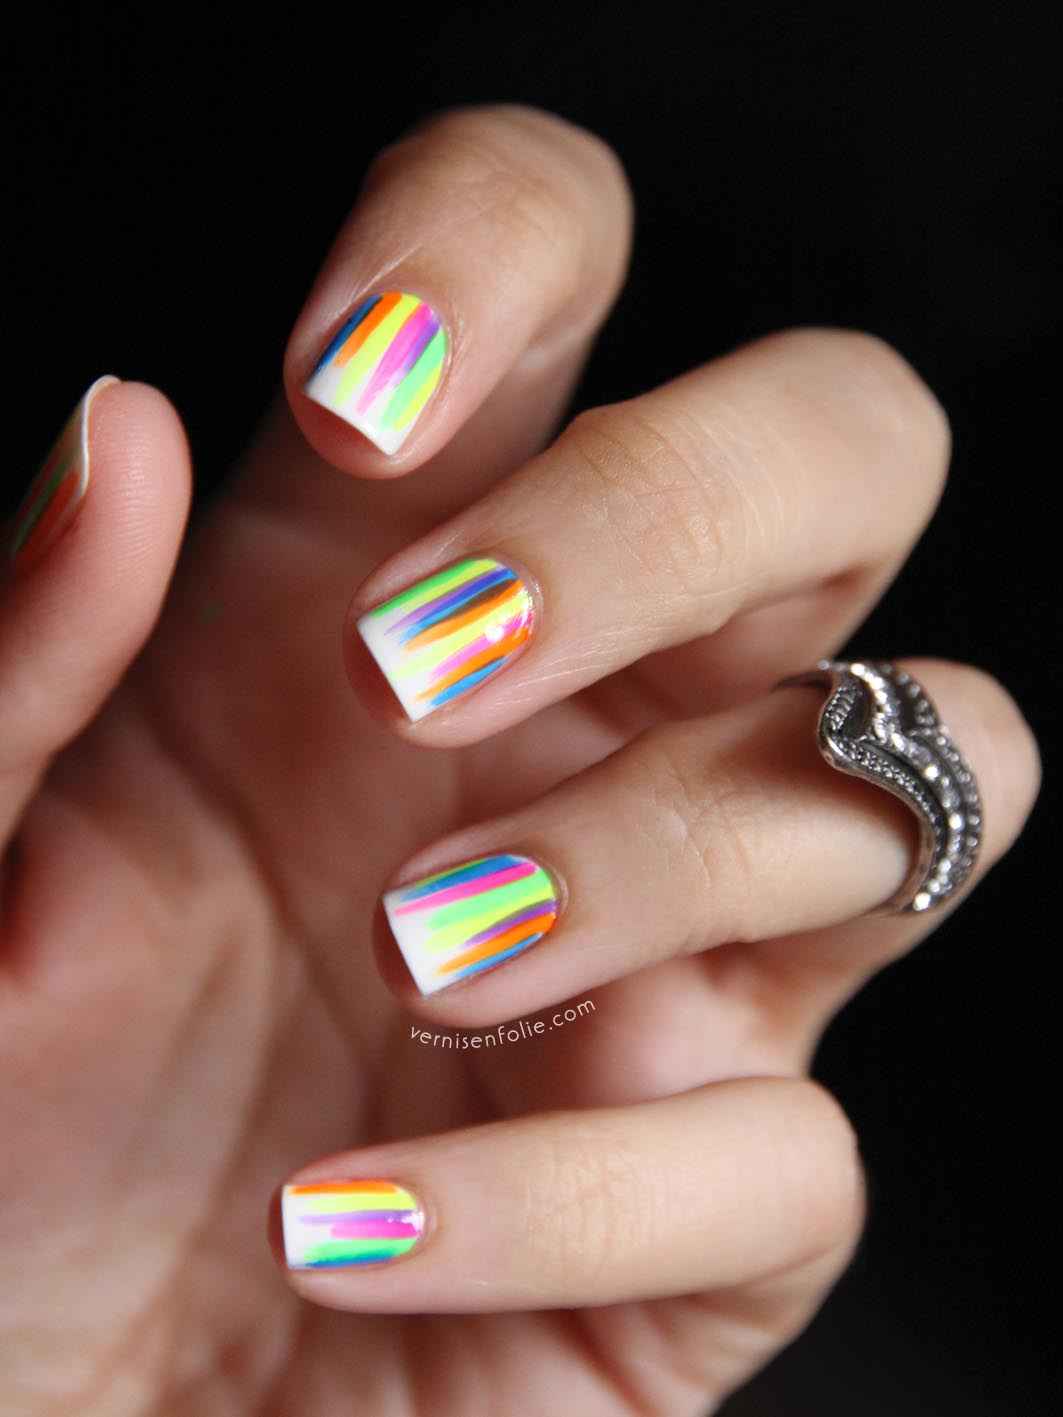 Cute Simple At Home Nail Designs Best Image Nail - Nail designs home